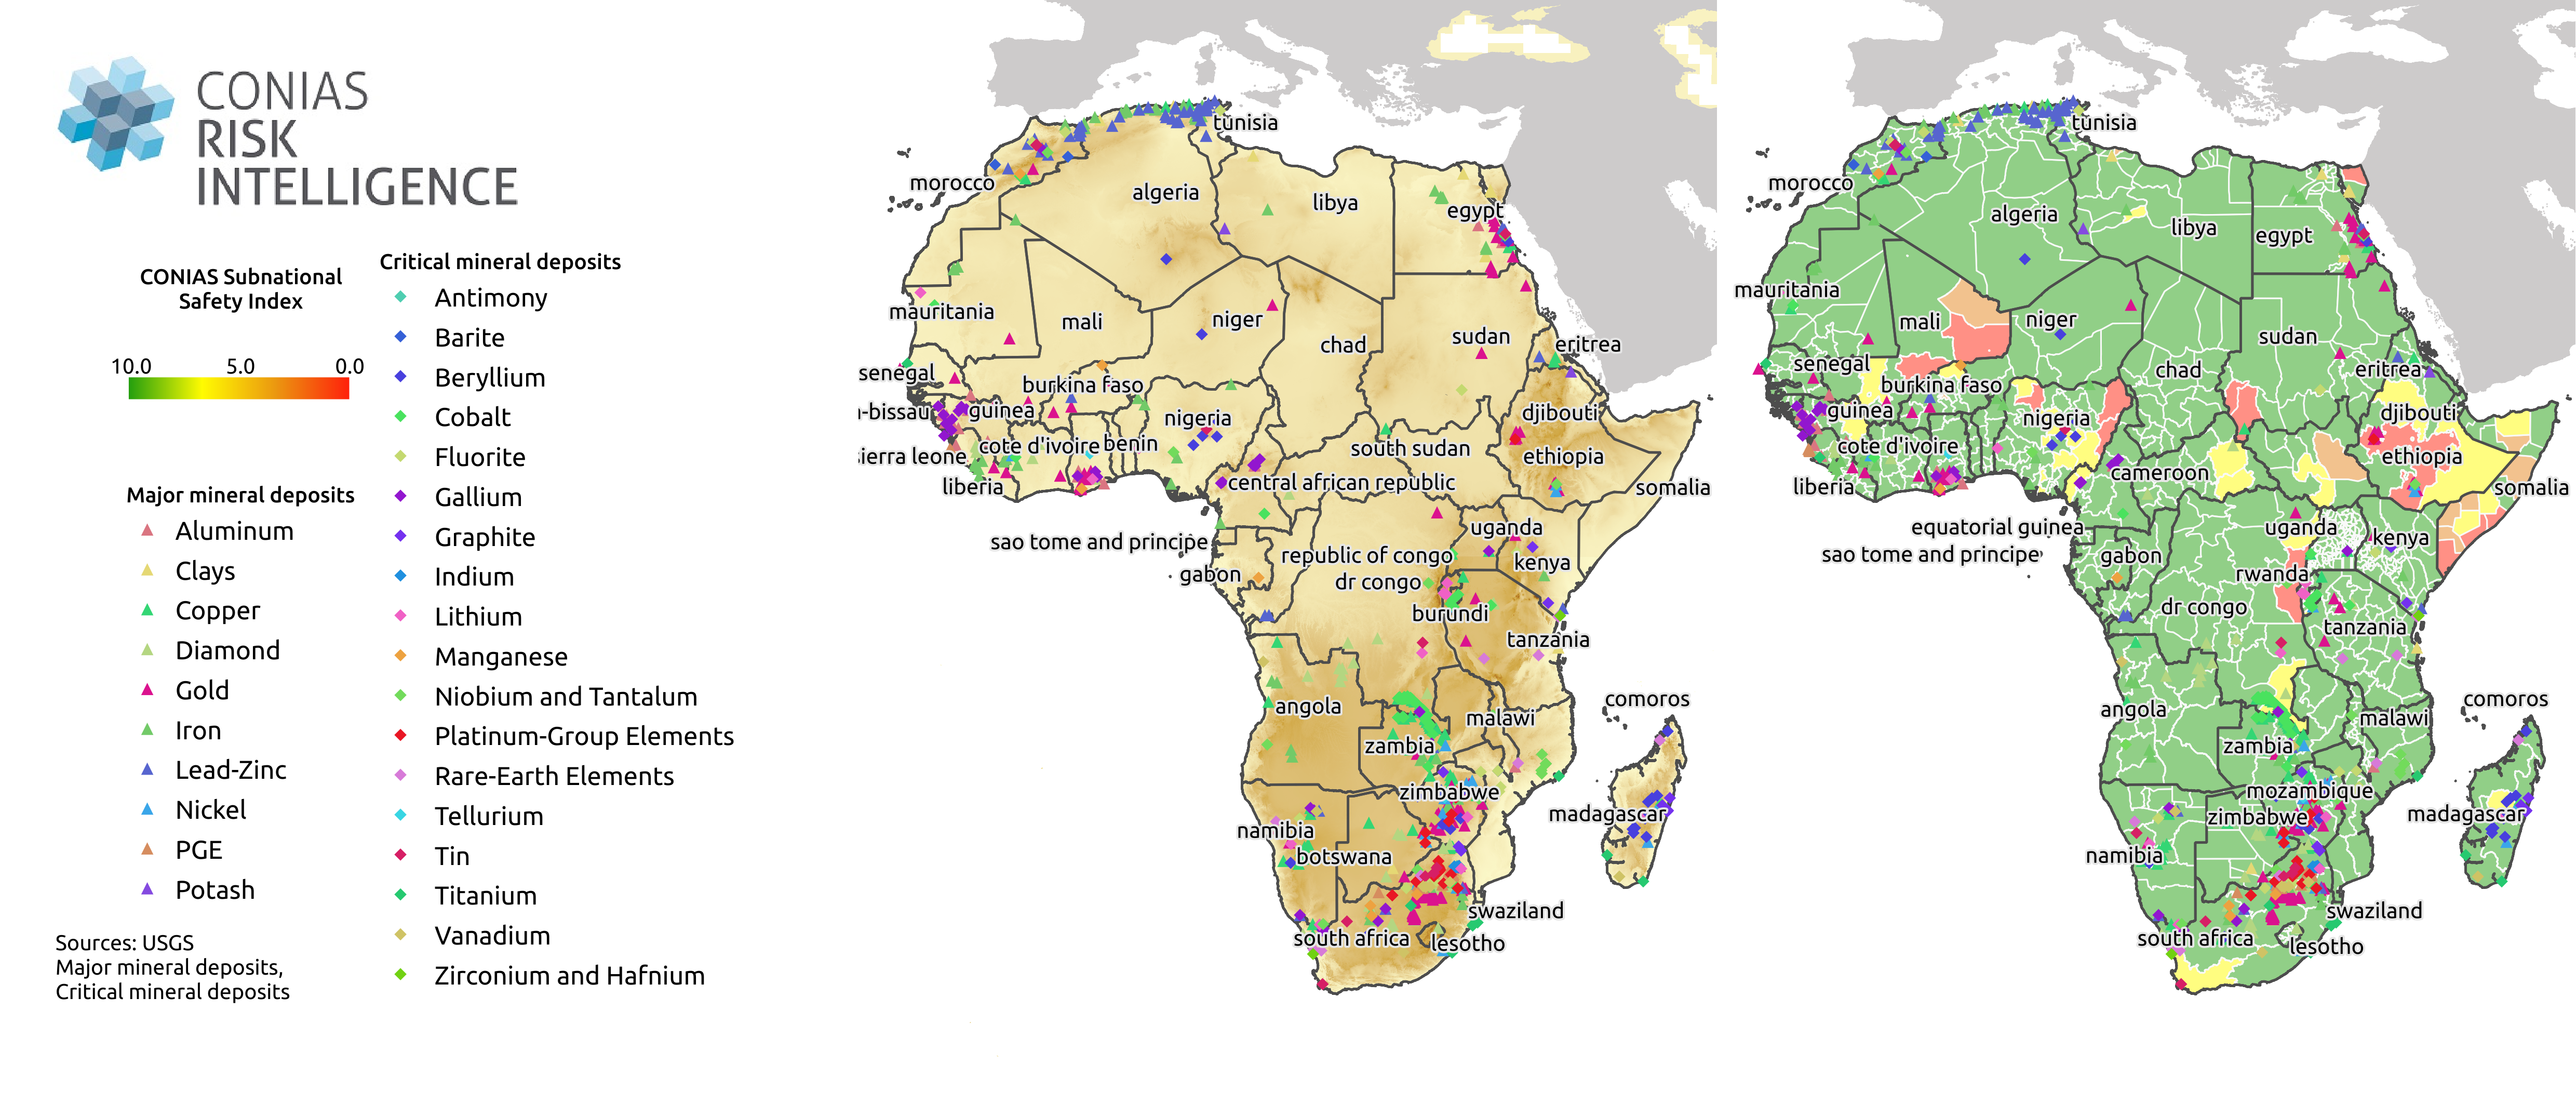 CONIAS Figure - Rare Earths on the African Continent